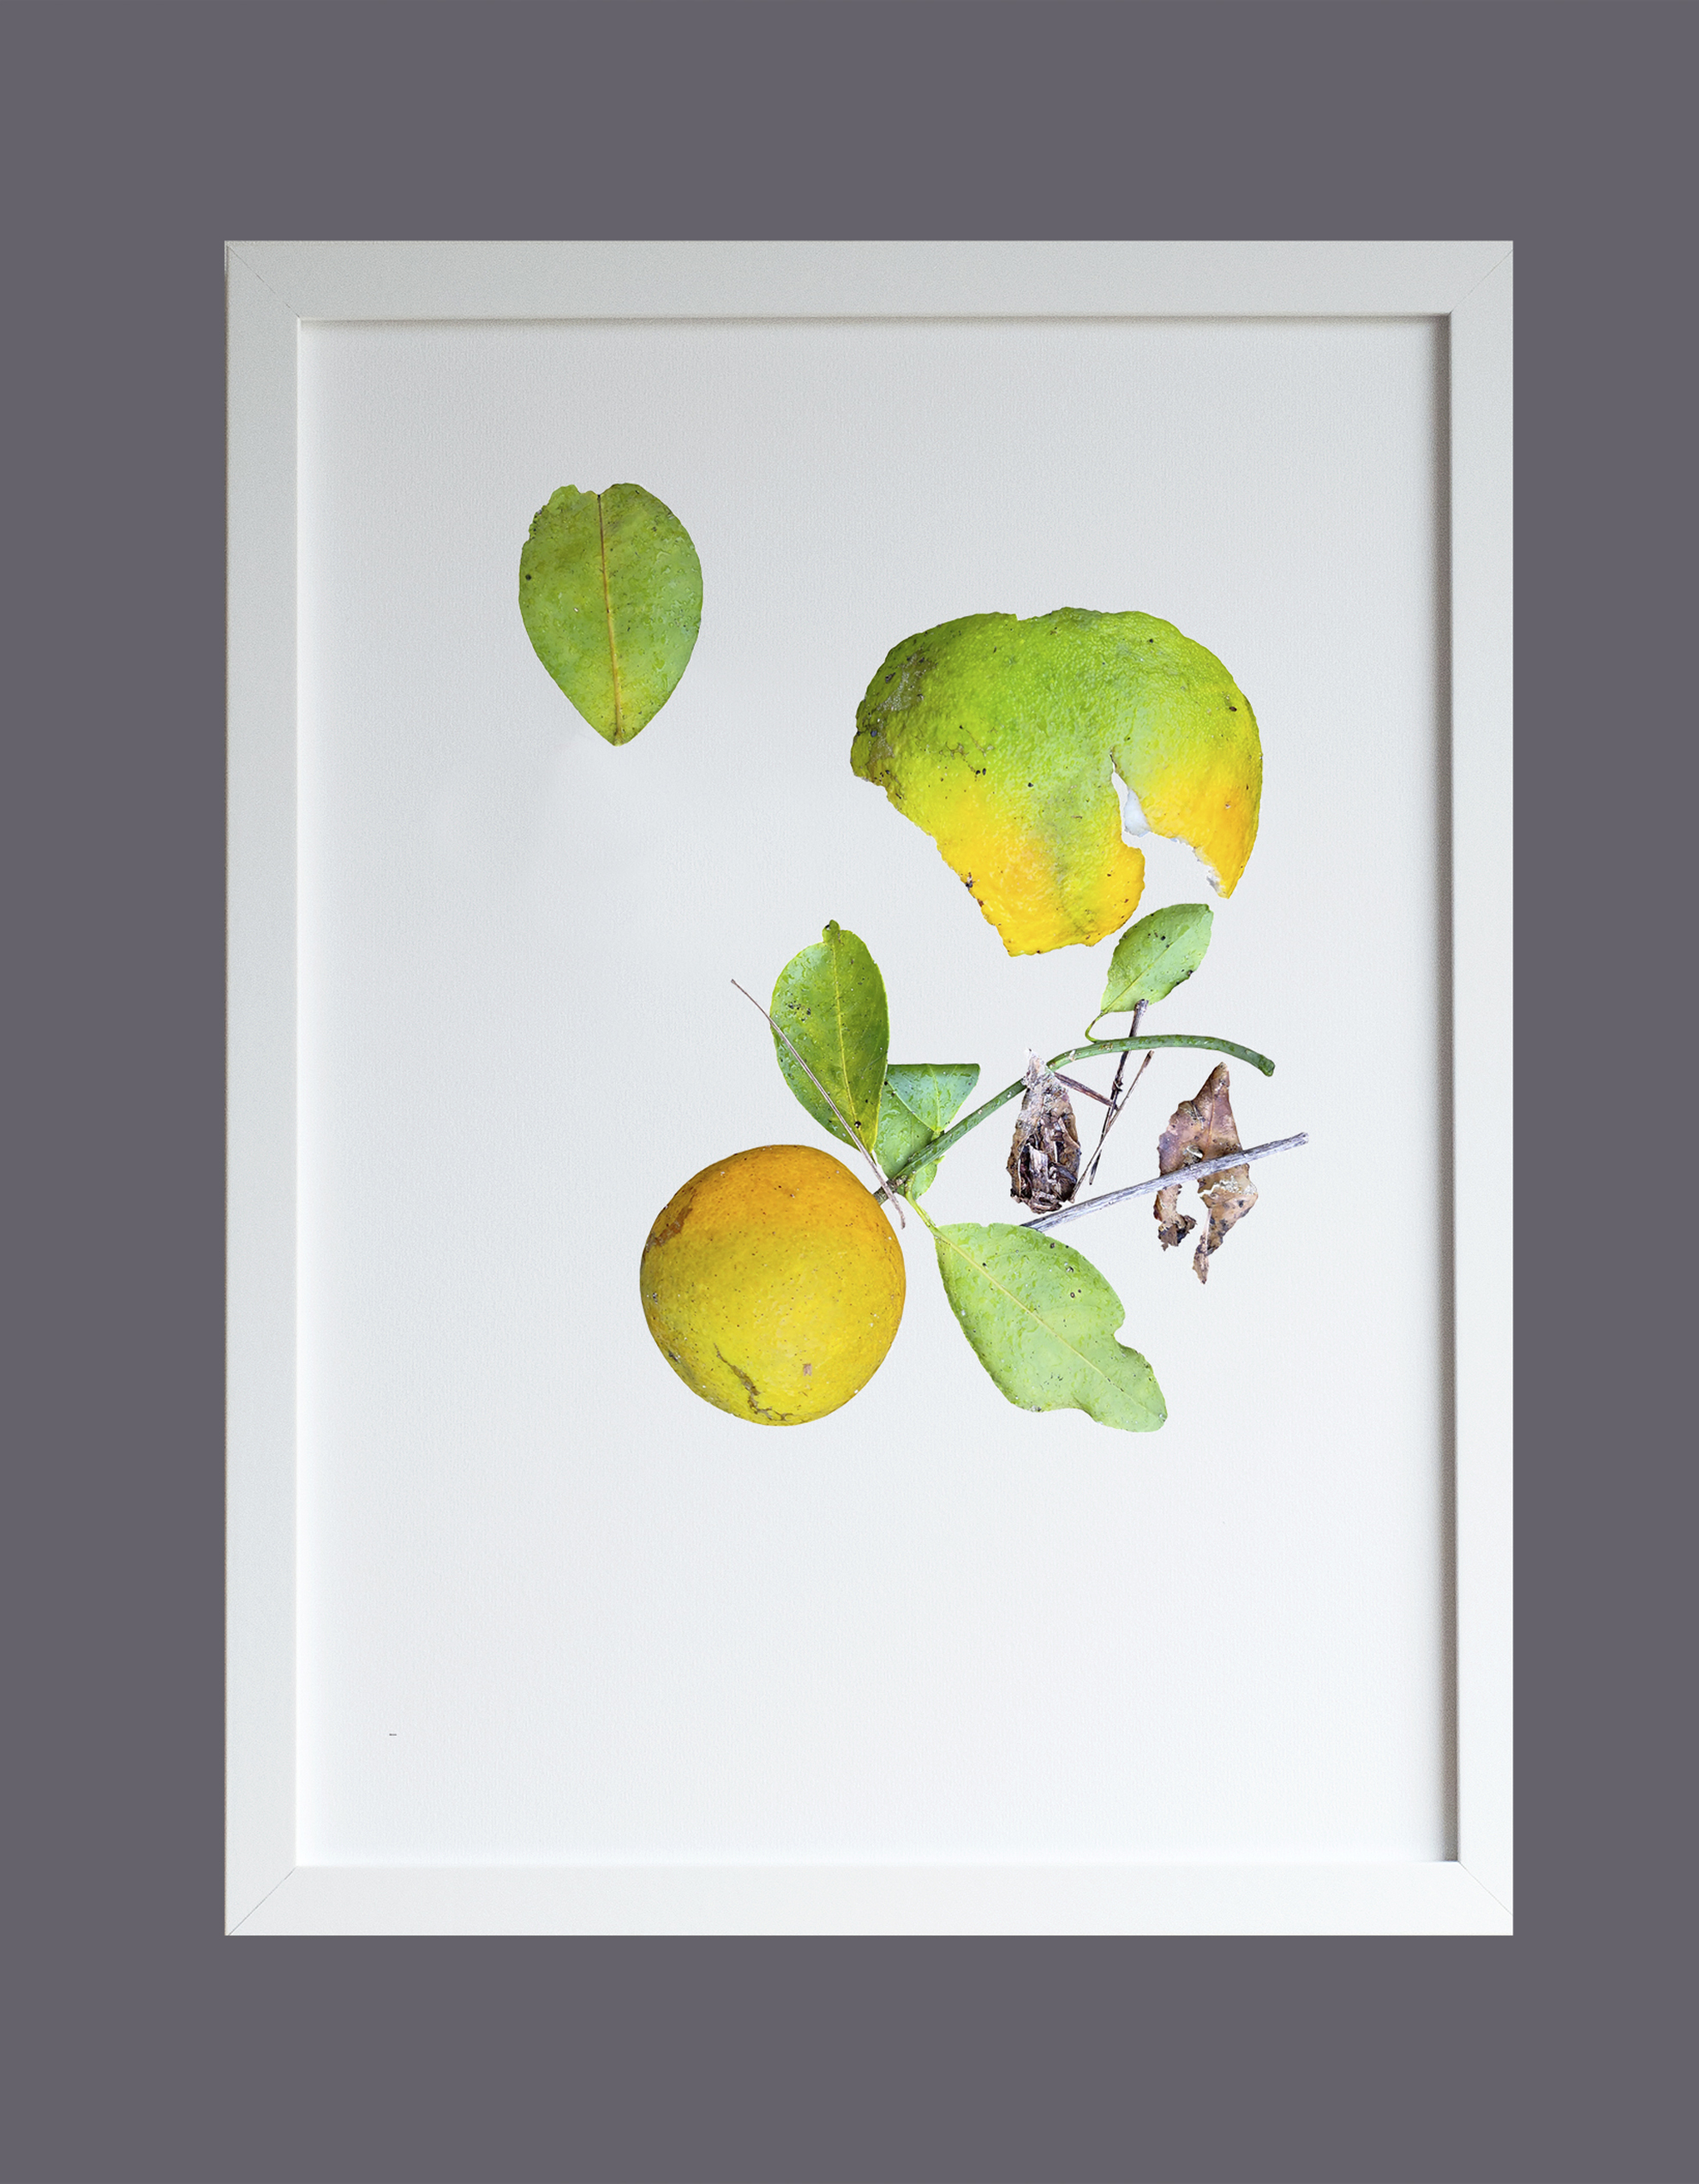 Image featuring a framed print of pomelo and orange peels photo design